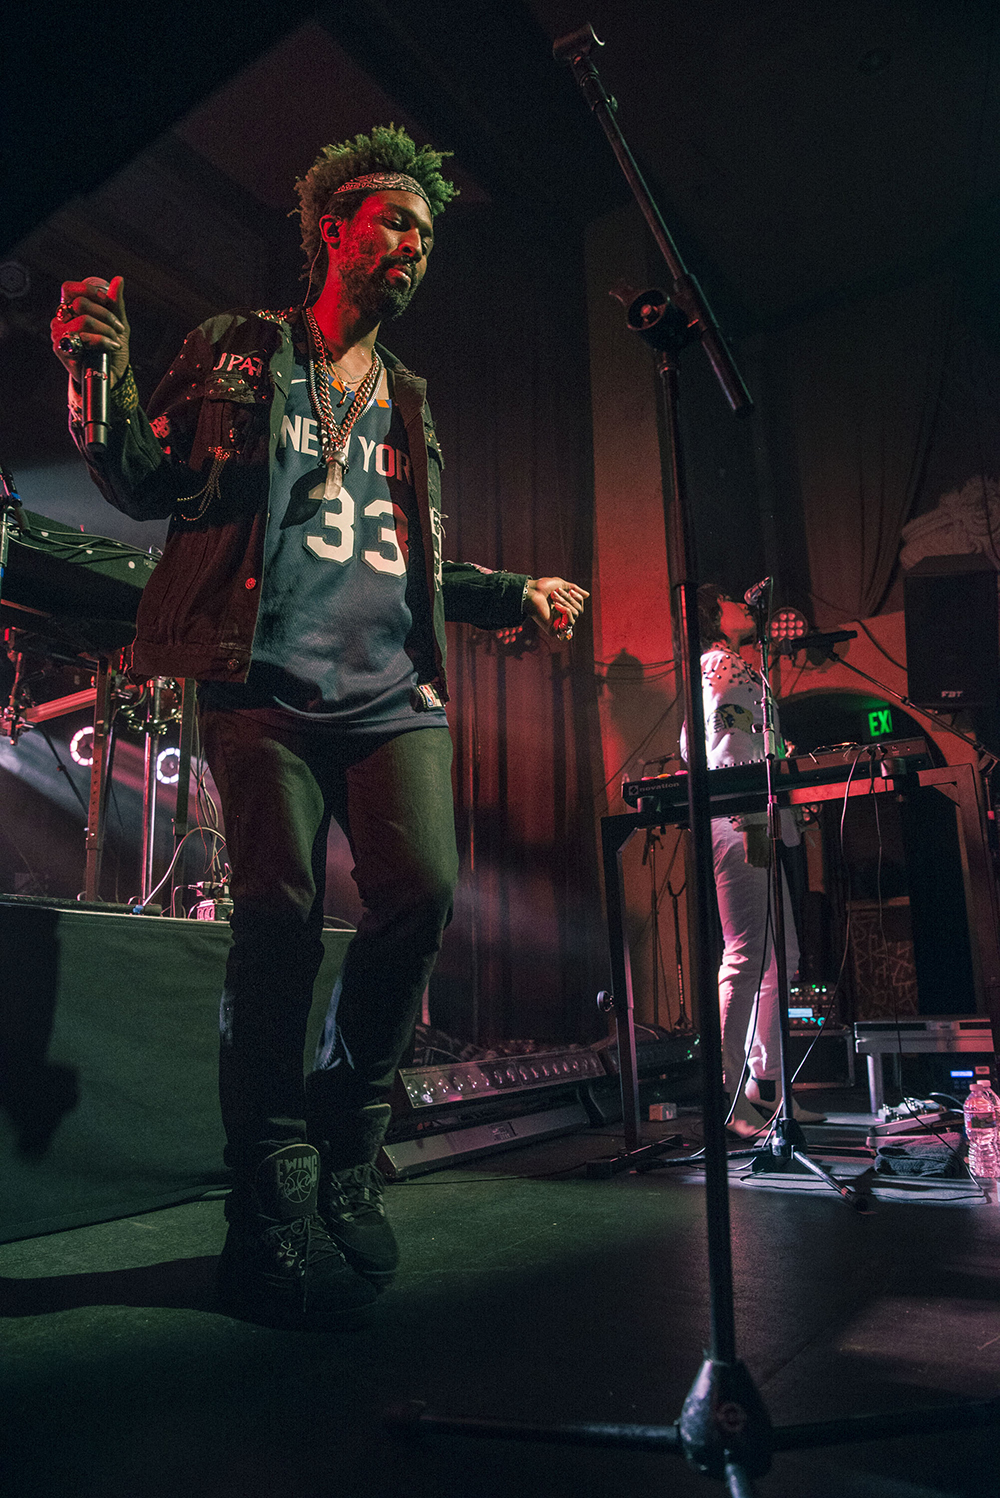 The Knocks @ Bluebird_AustinVoldseth-12.jpg